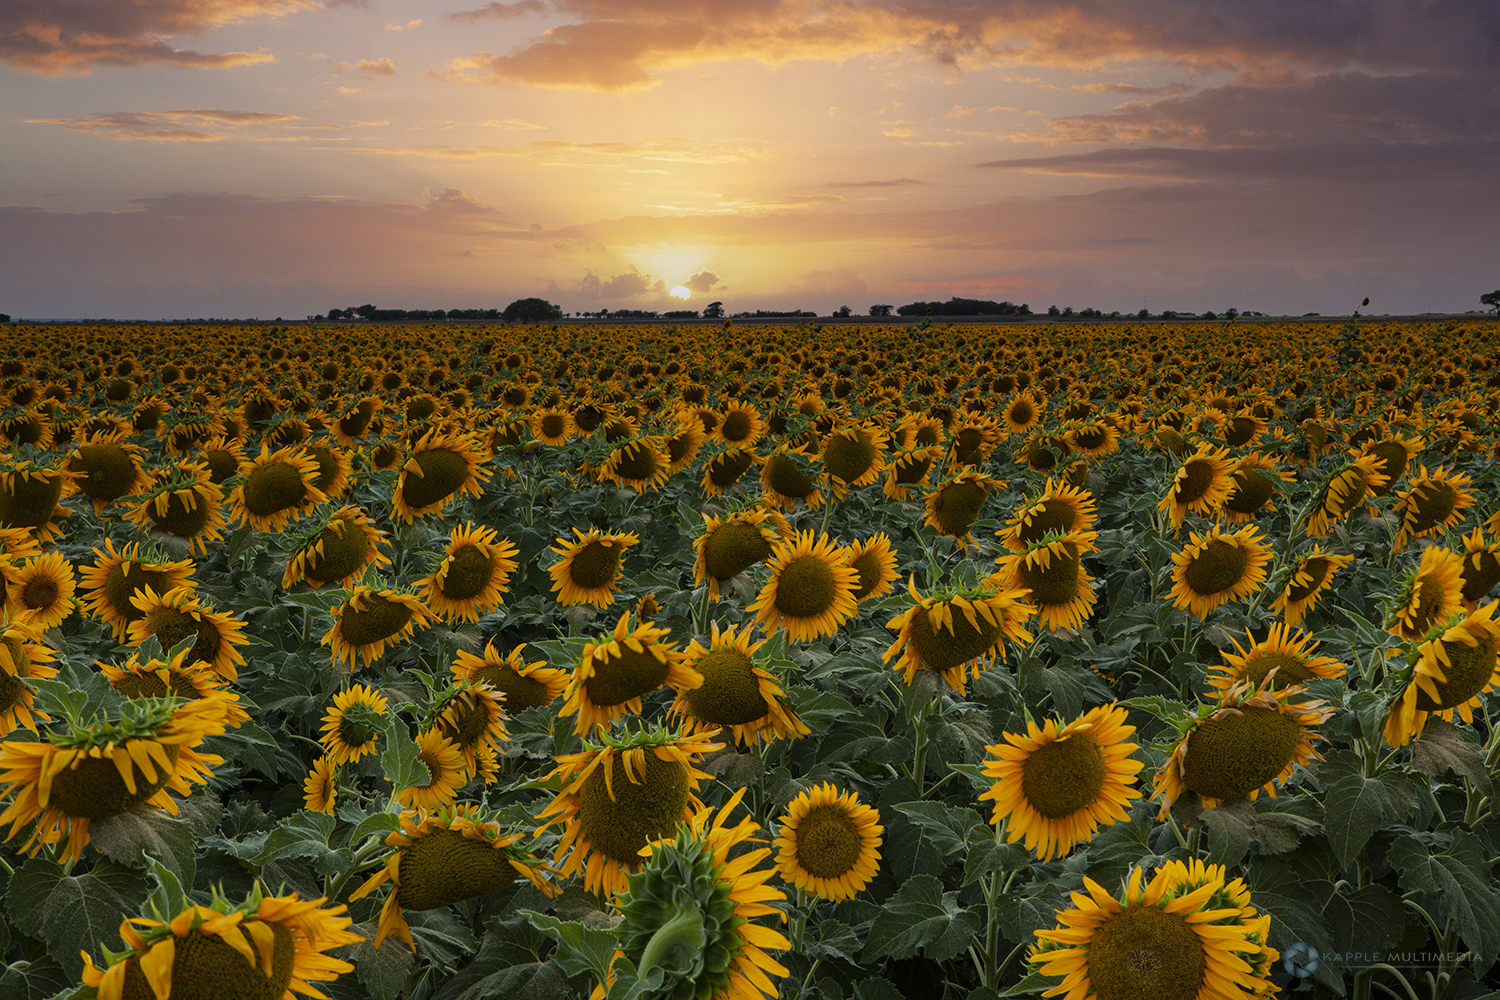 Sunflowers in Texas